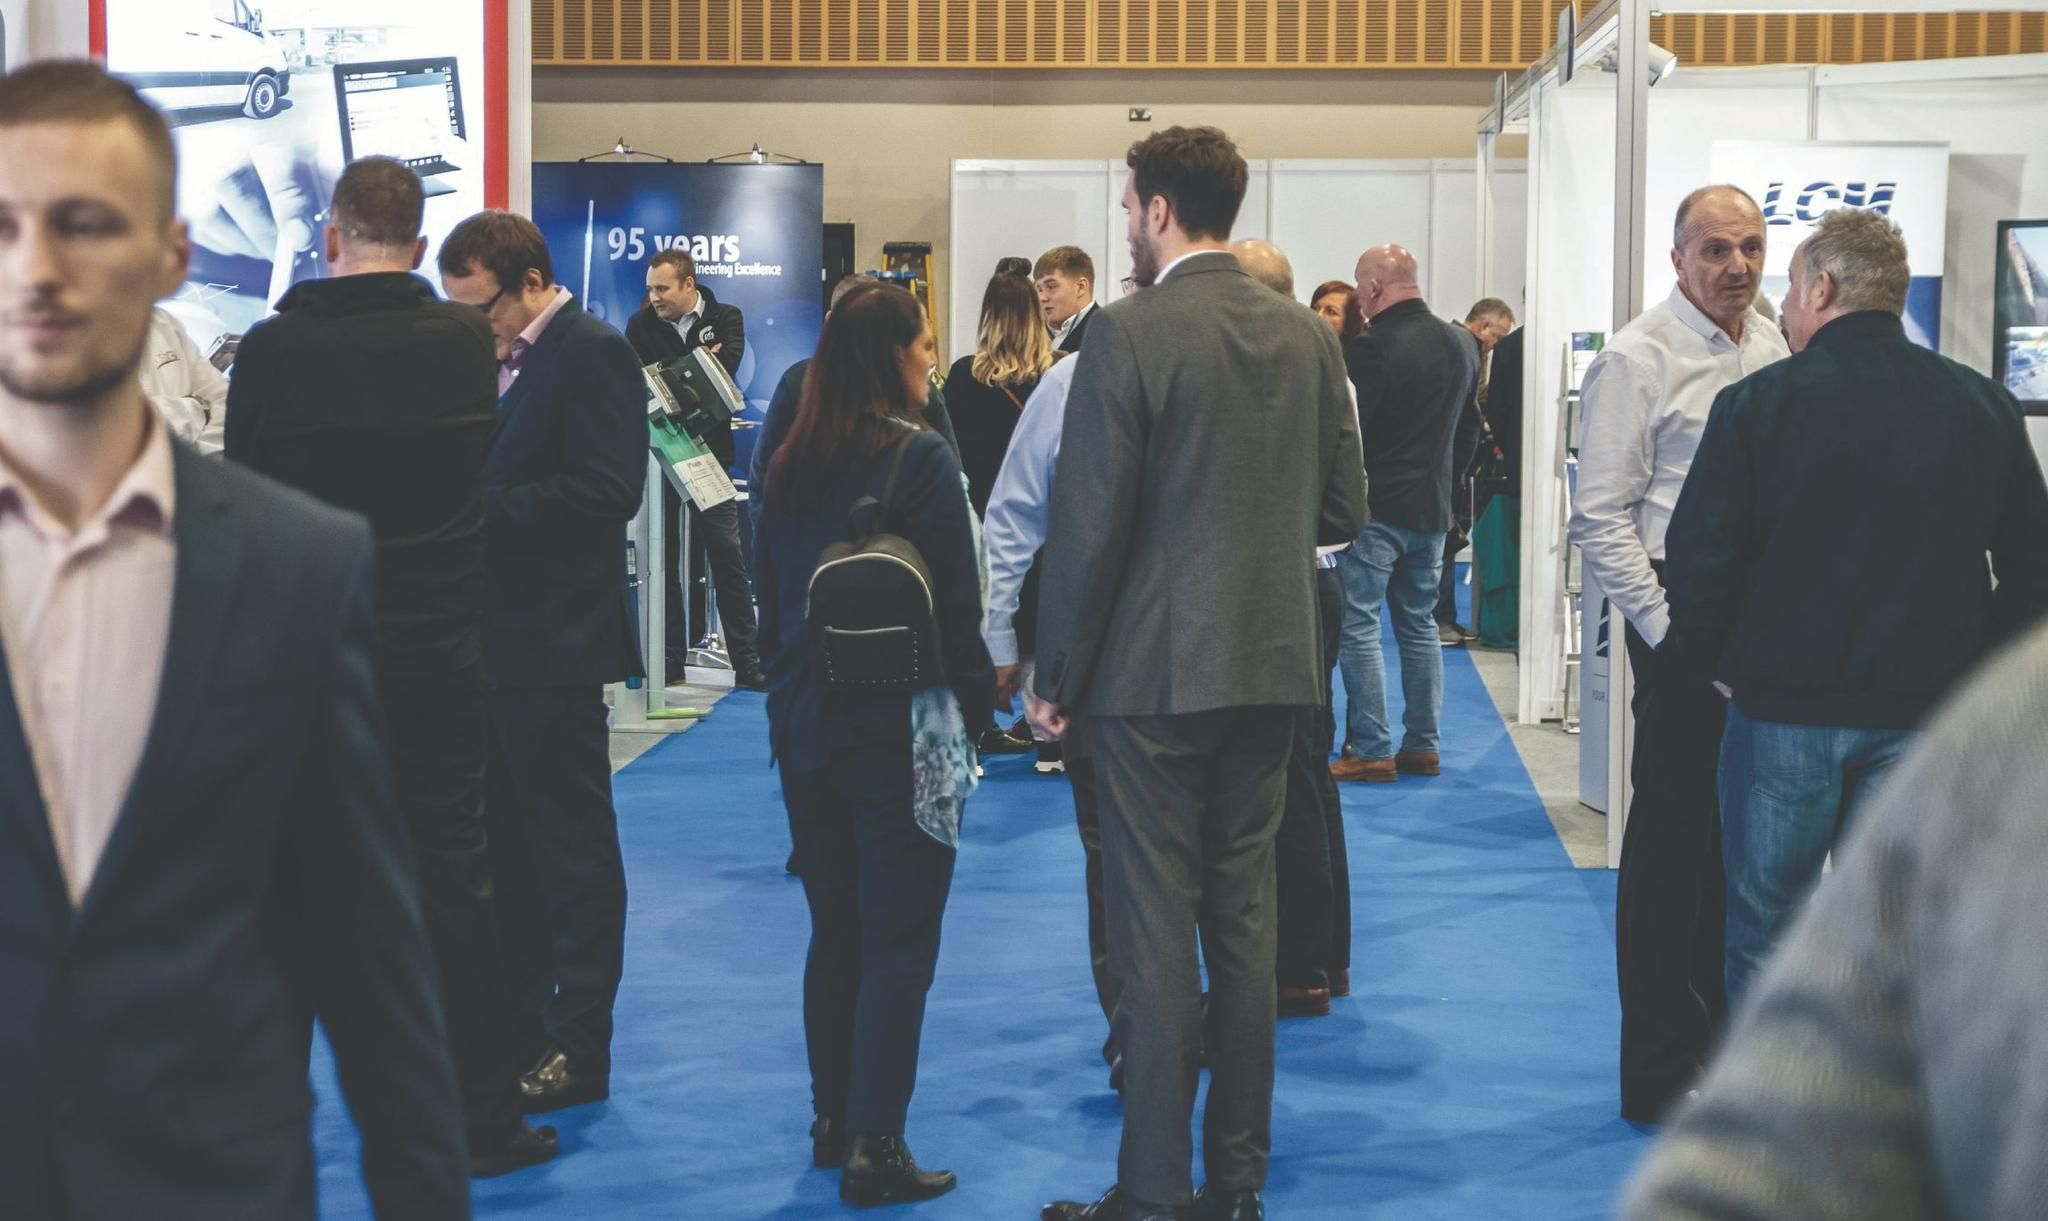 Exhibition: discover the latest and most innovative products and services on the market.